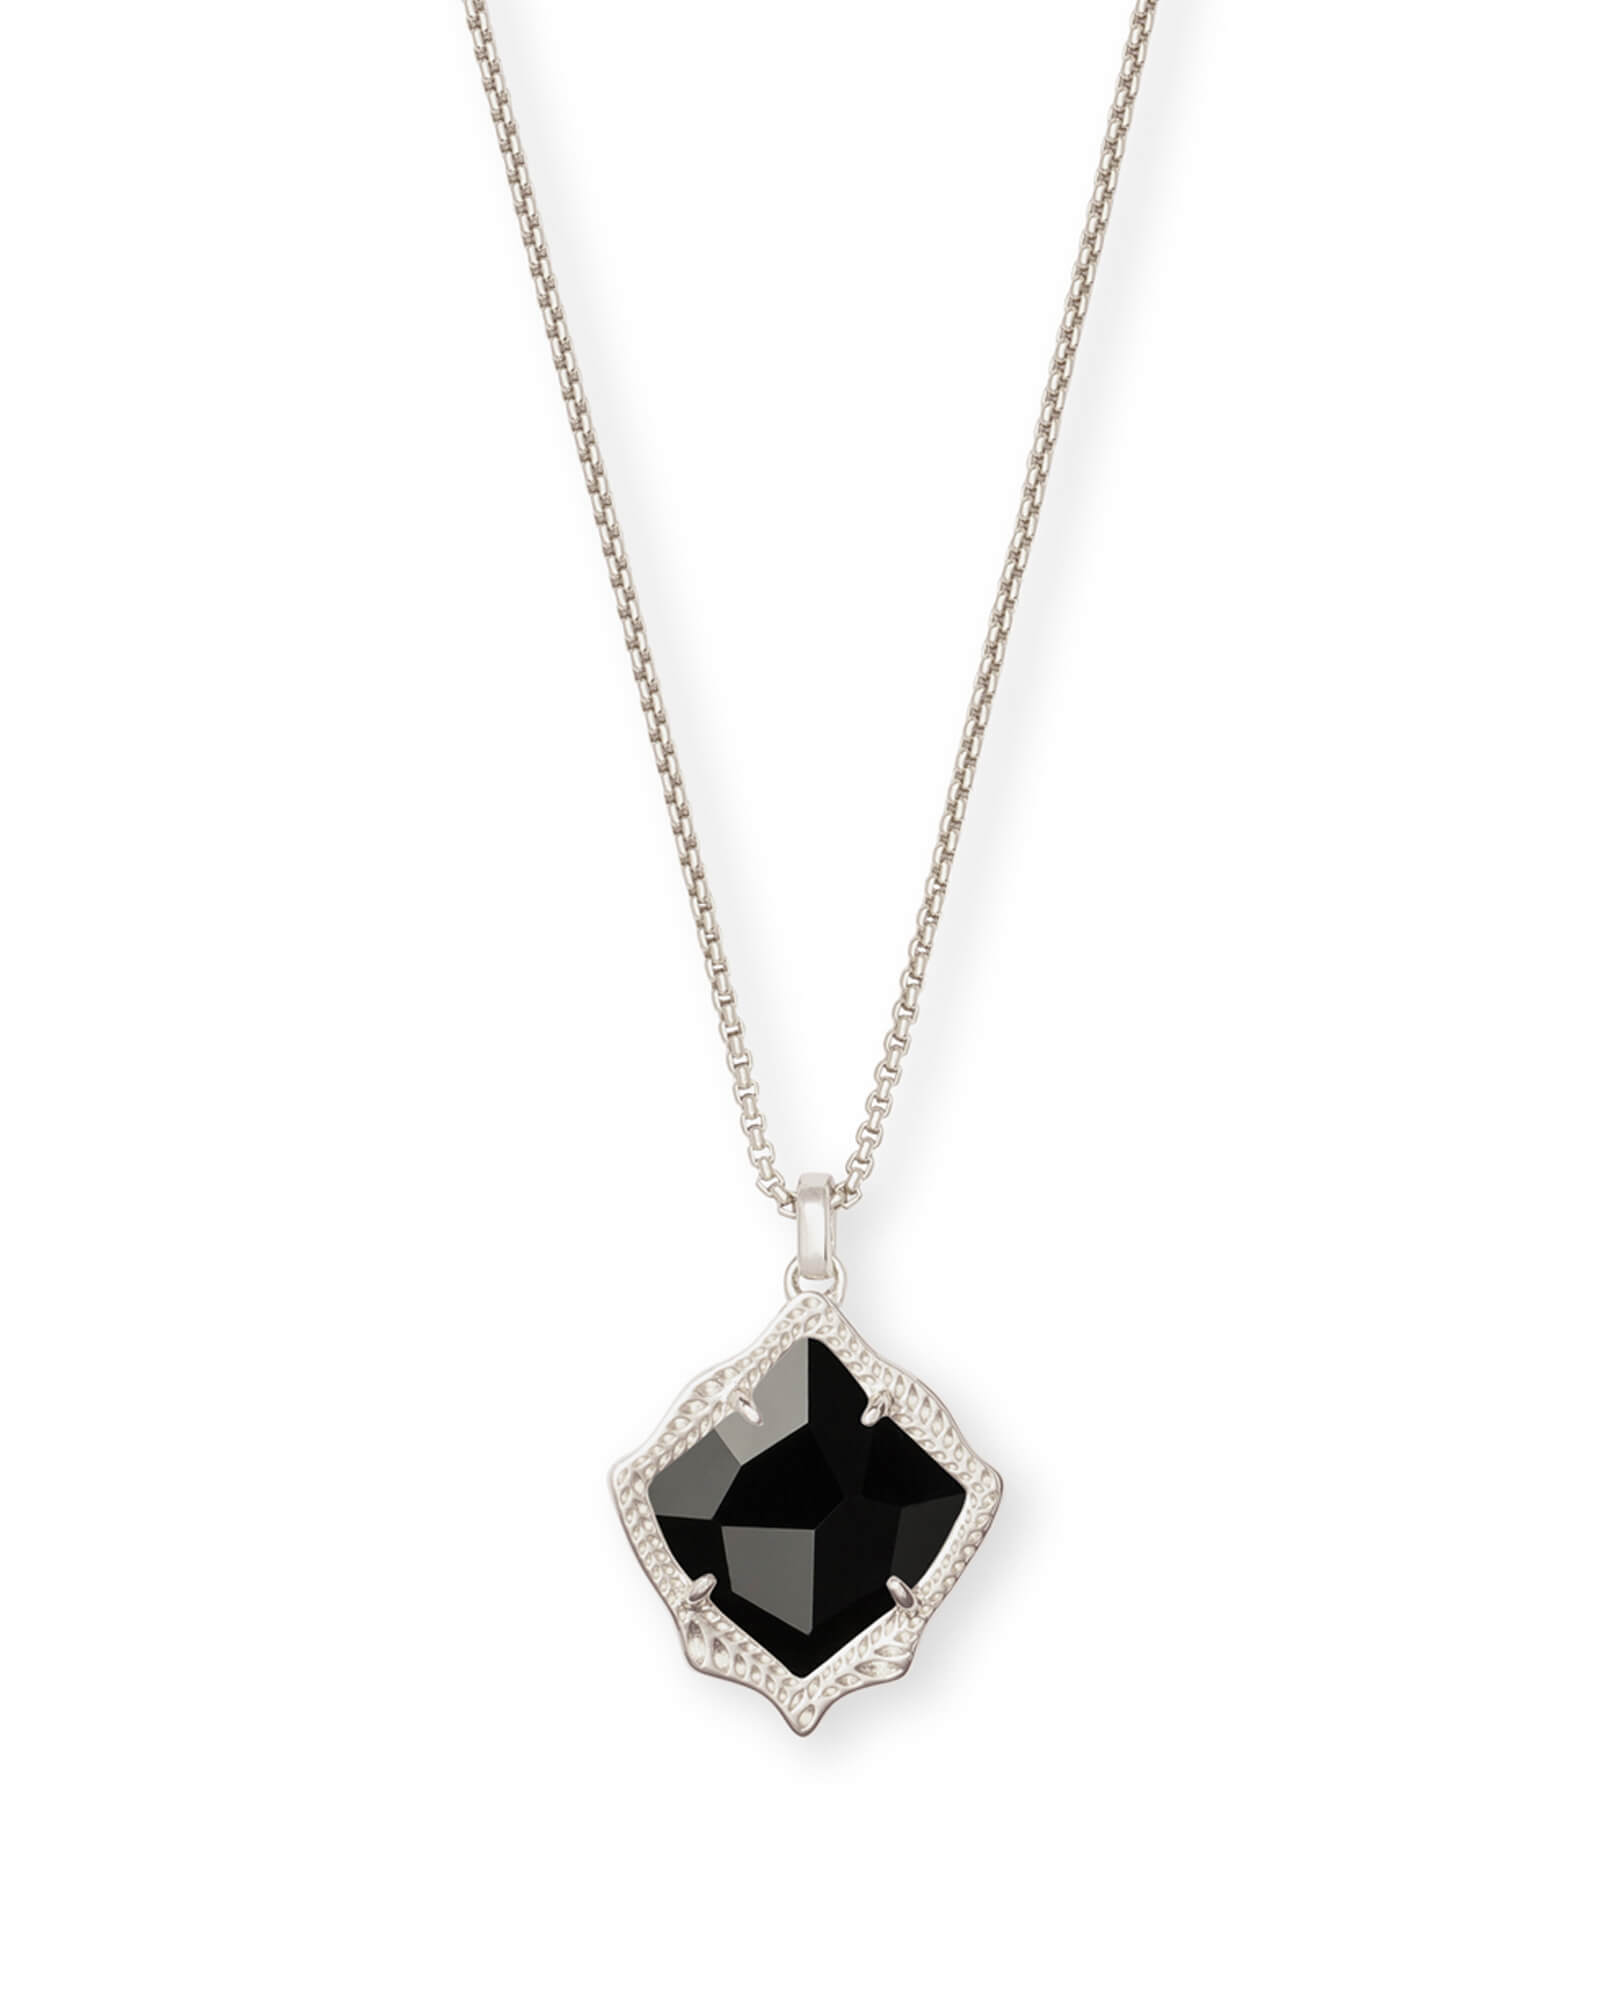 Kacey Long Pendant Necklace in Silver